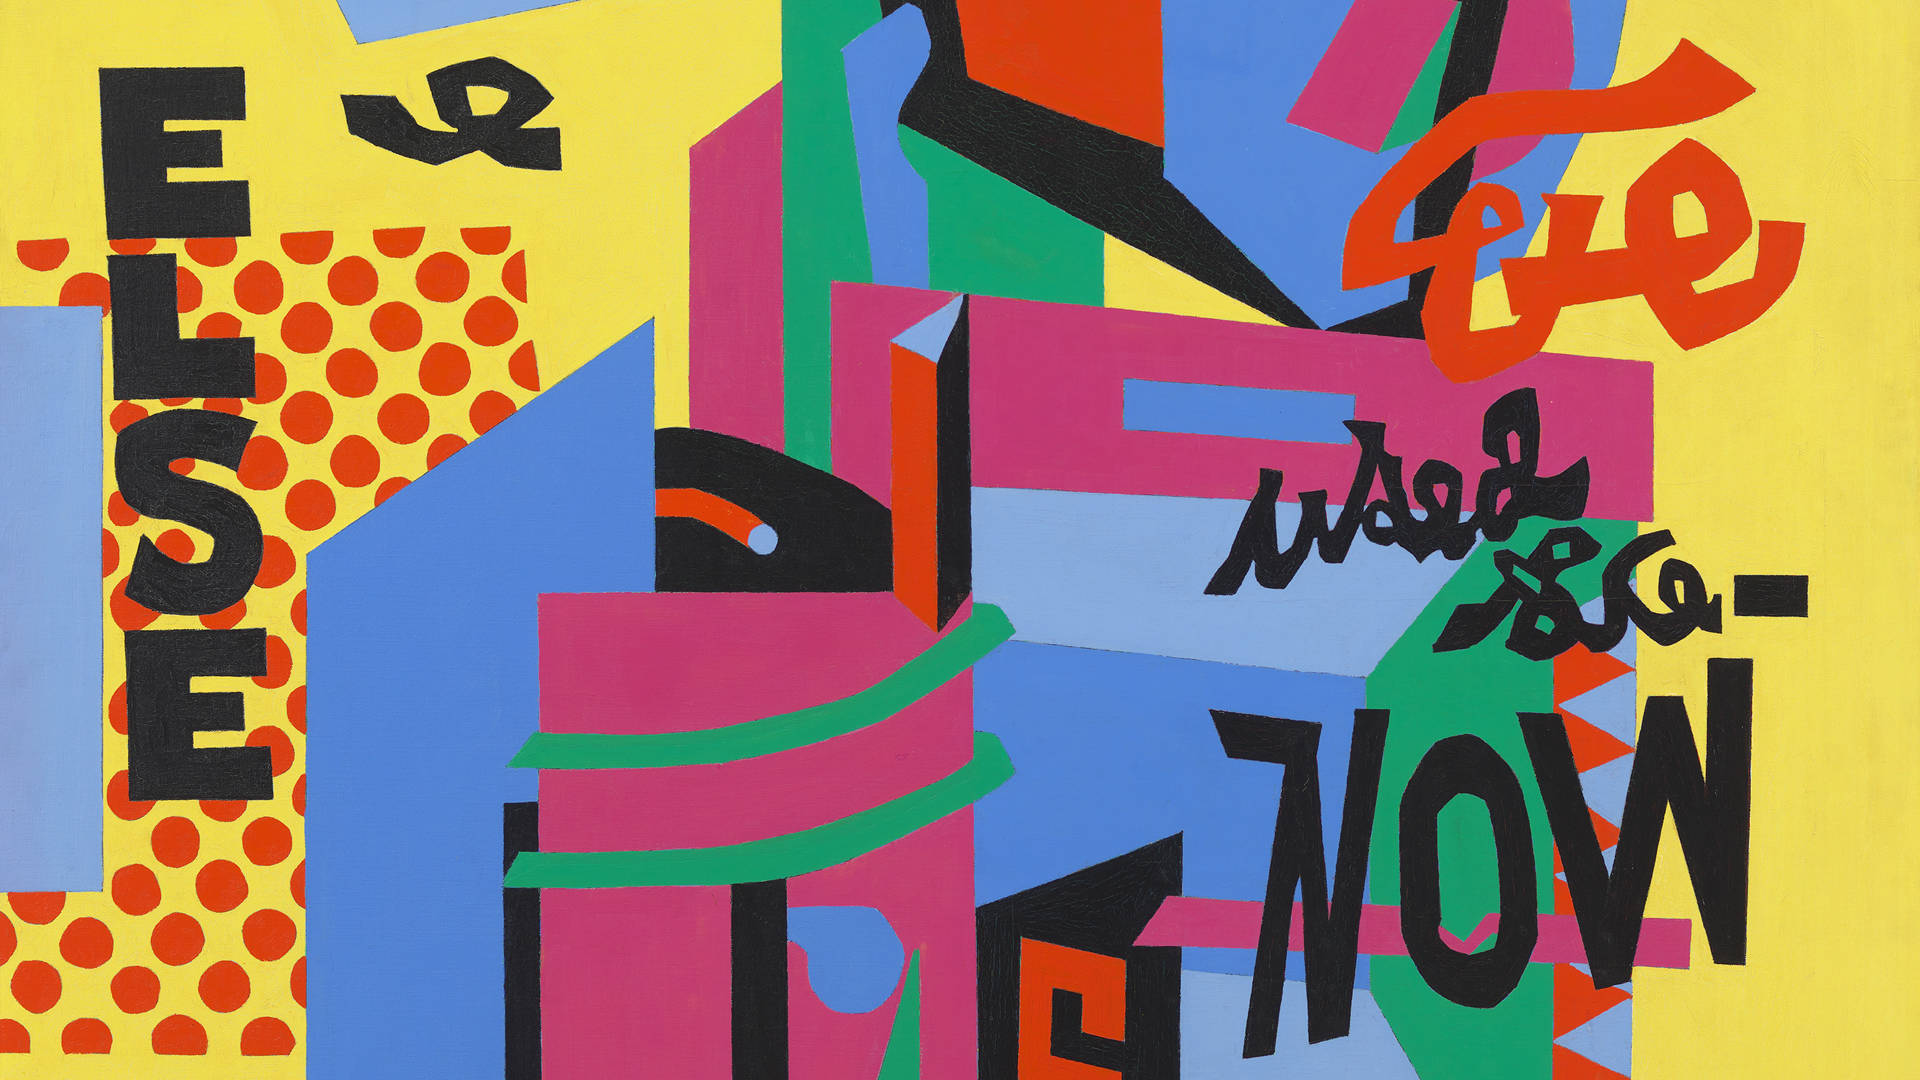 Stuart Davis, 'Owh! in Sao Pão' (detail), 1951. Courtesy of the Fine Arts Museums of San Francisco